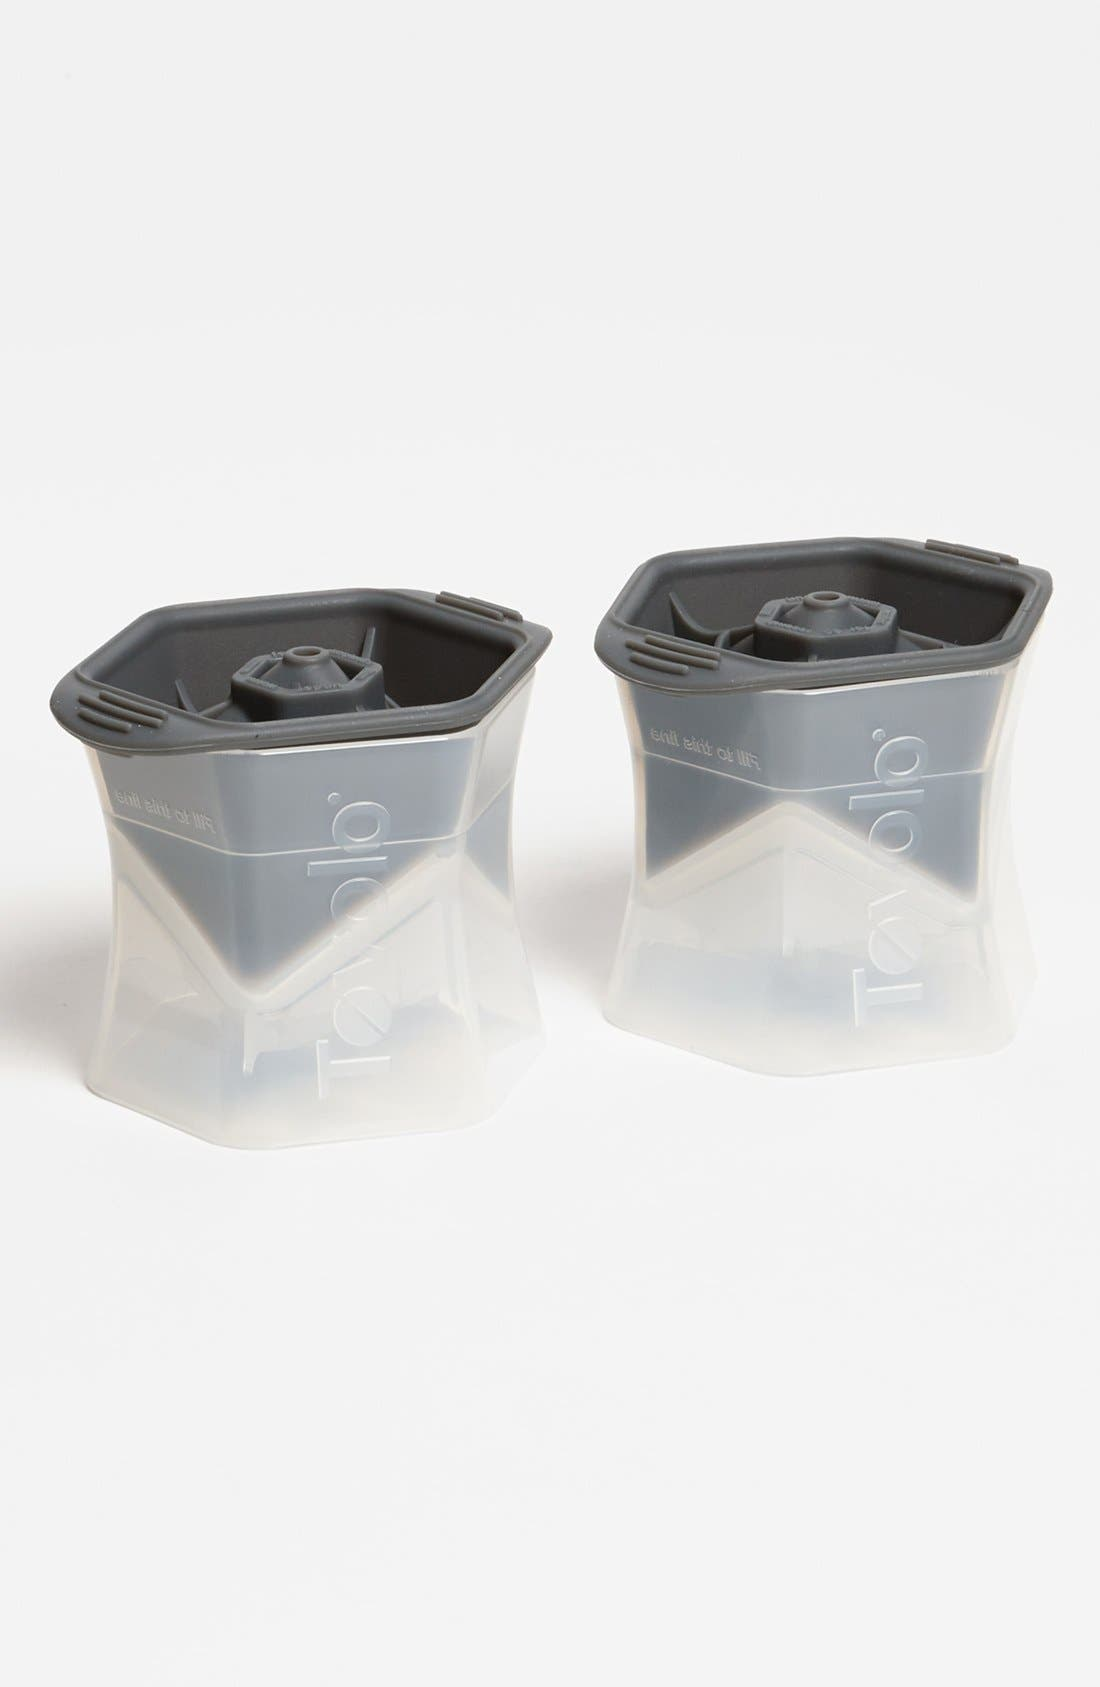 Alternate Image 1 Selected - 'Colossal' Oversized Ice Cube Molds (Set of 2)